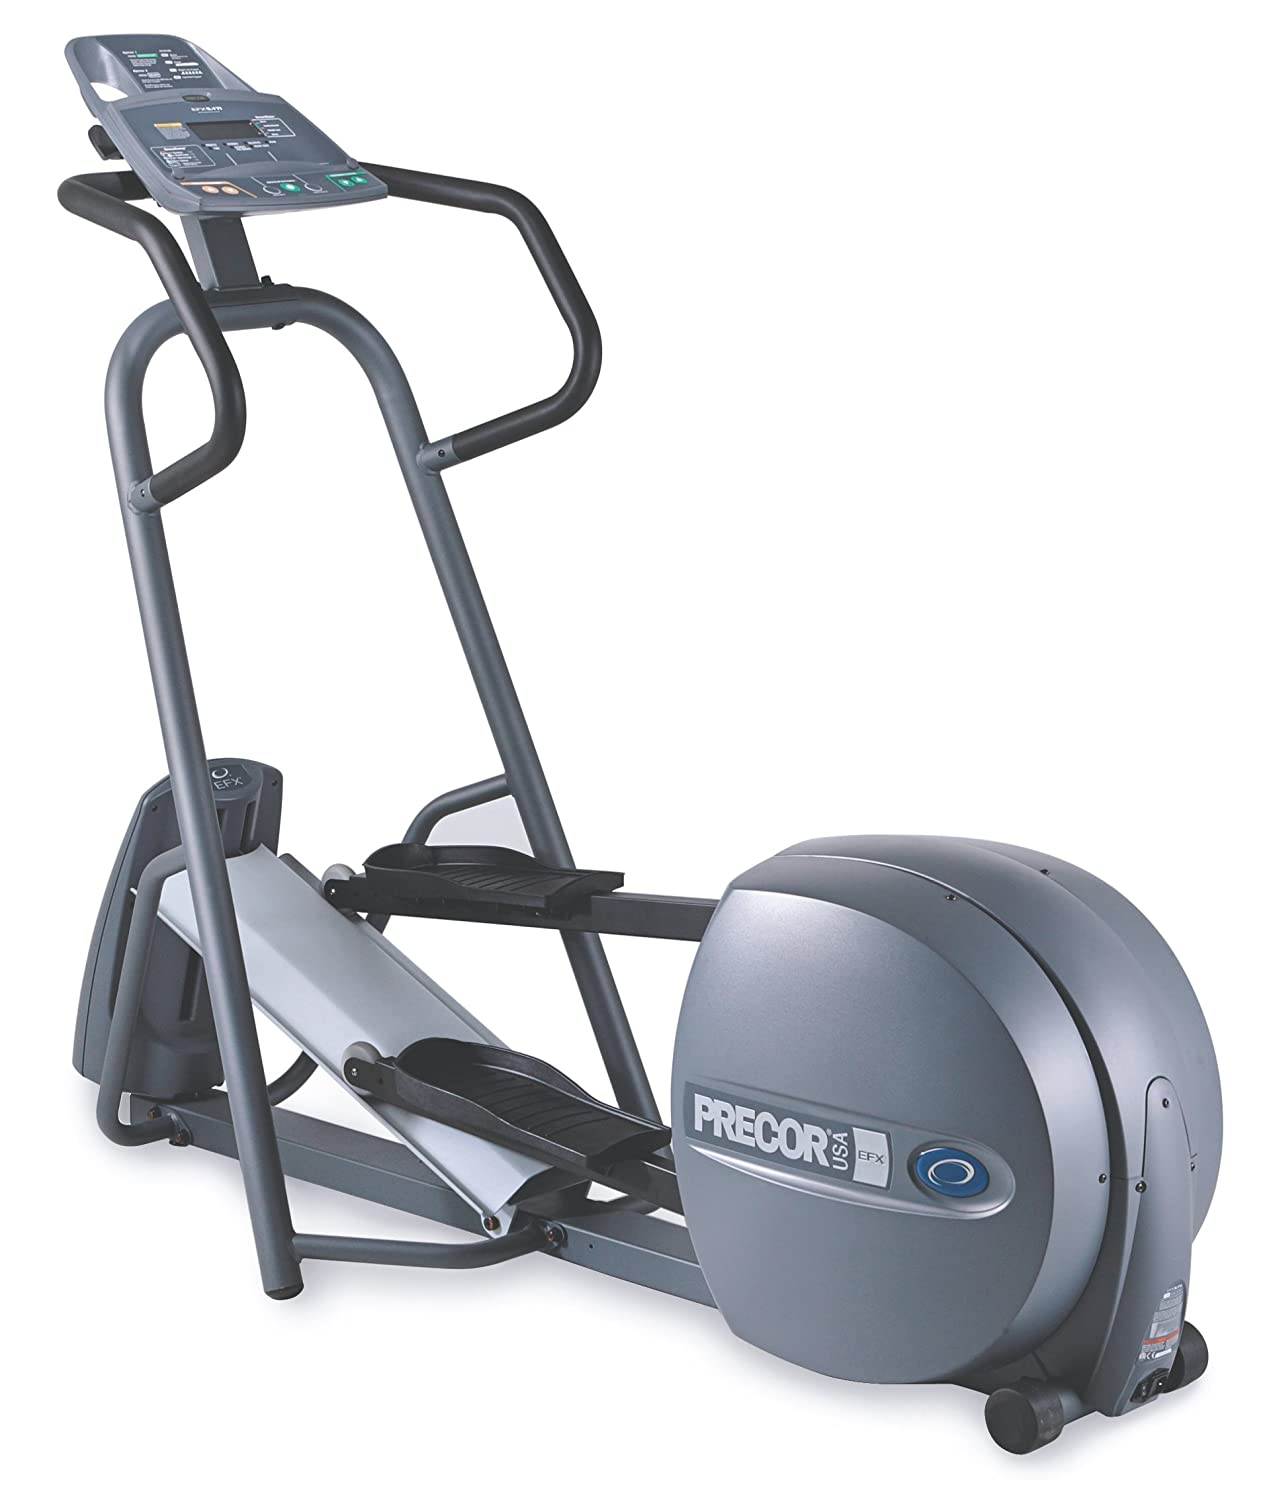 Precor EFX 5.17i Elliptical Fitness Crosstrainer (2008 Model)